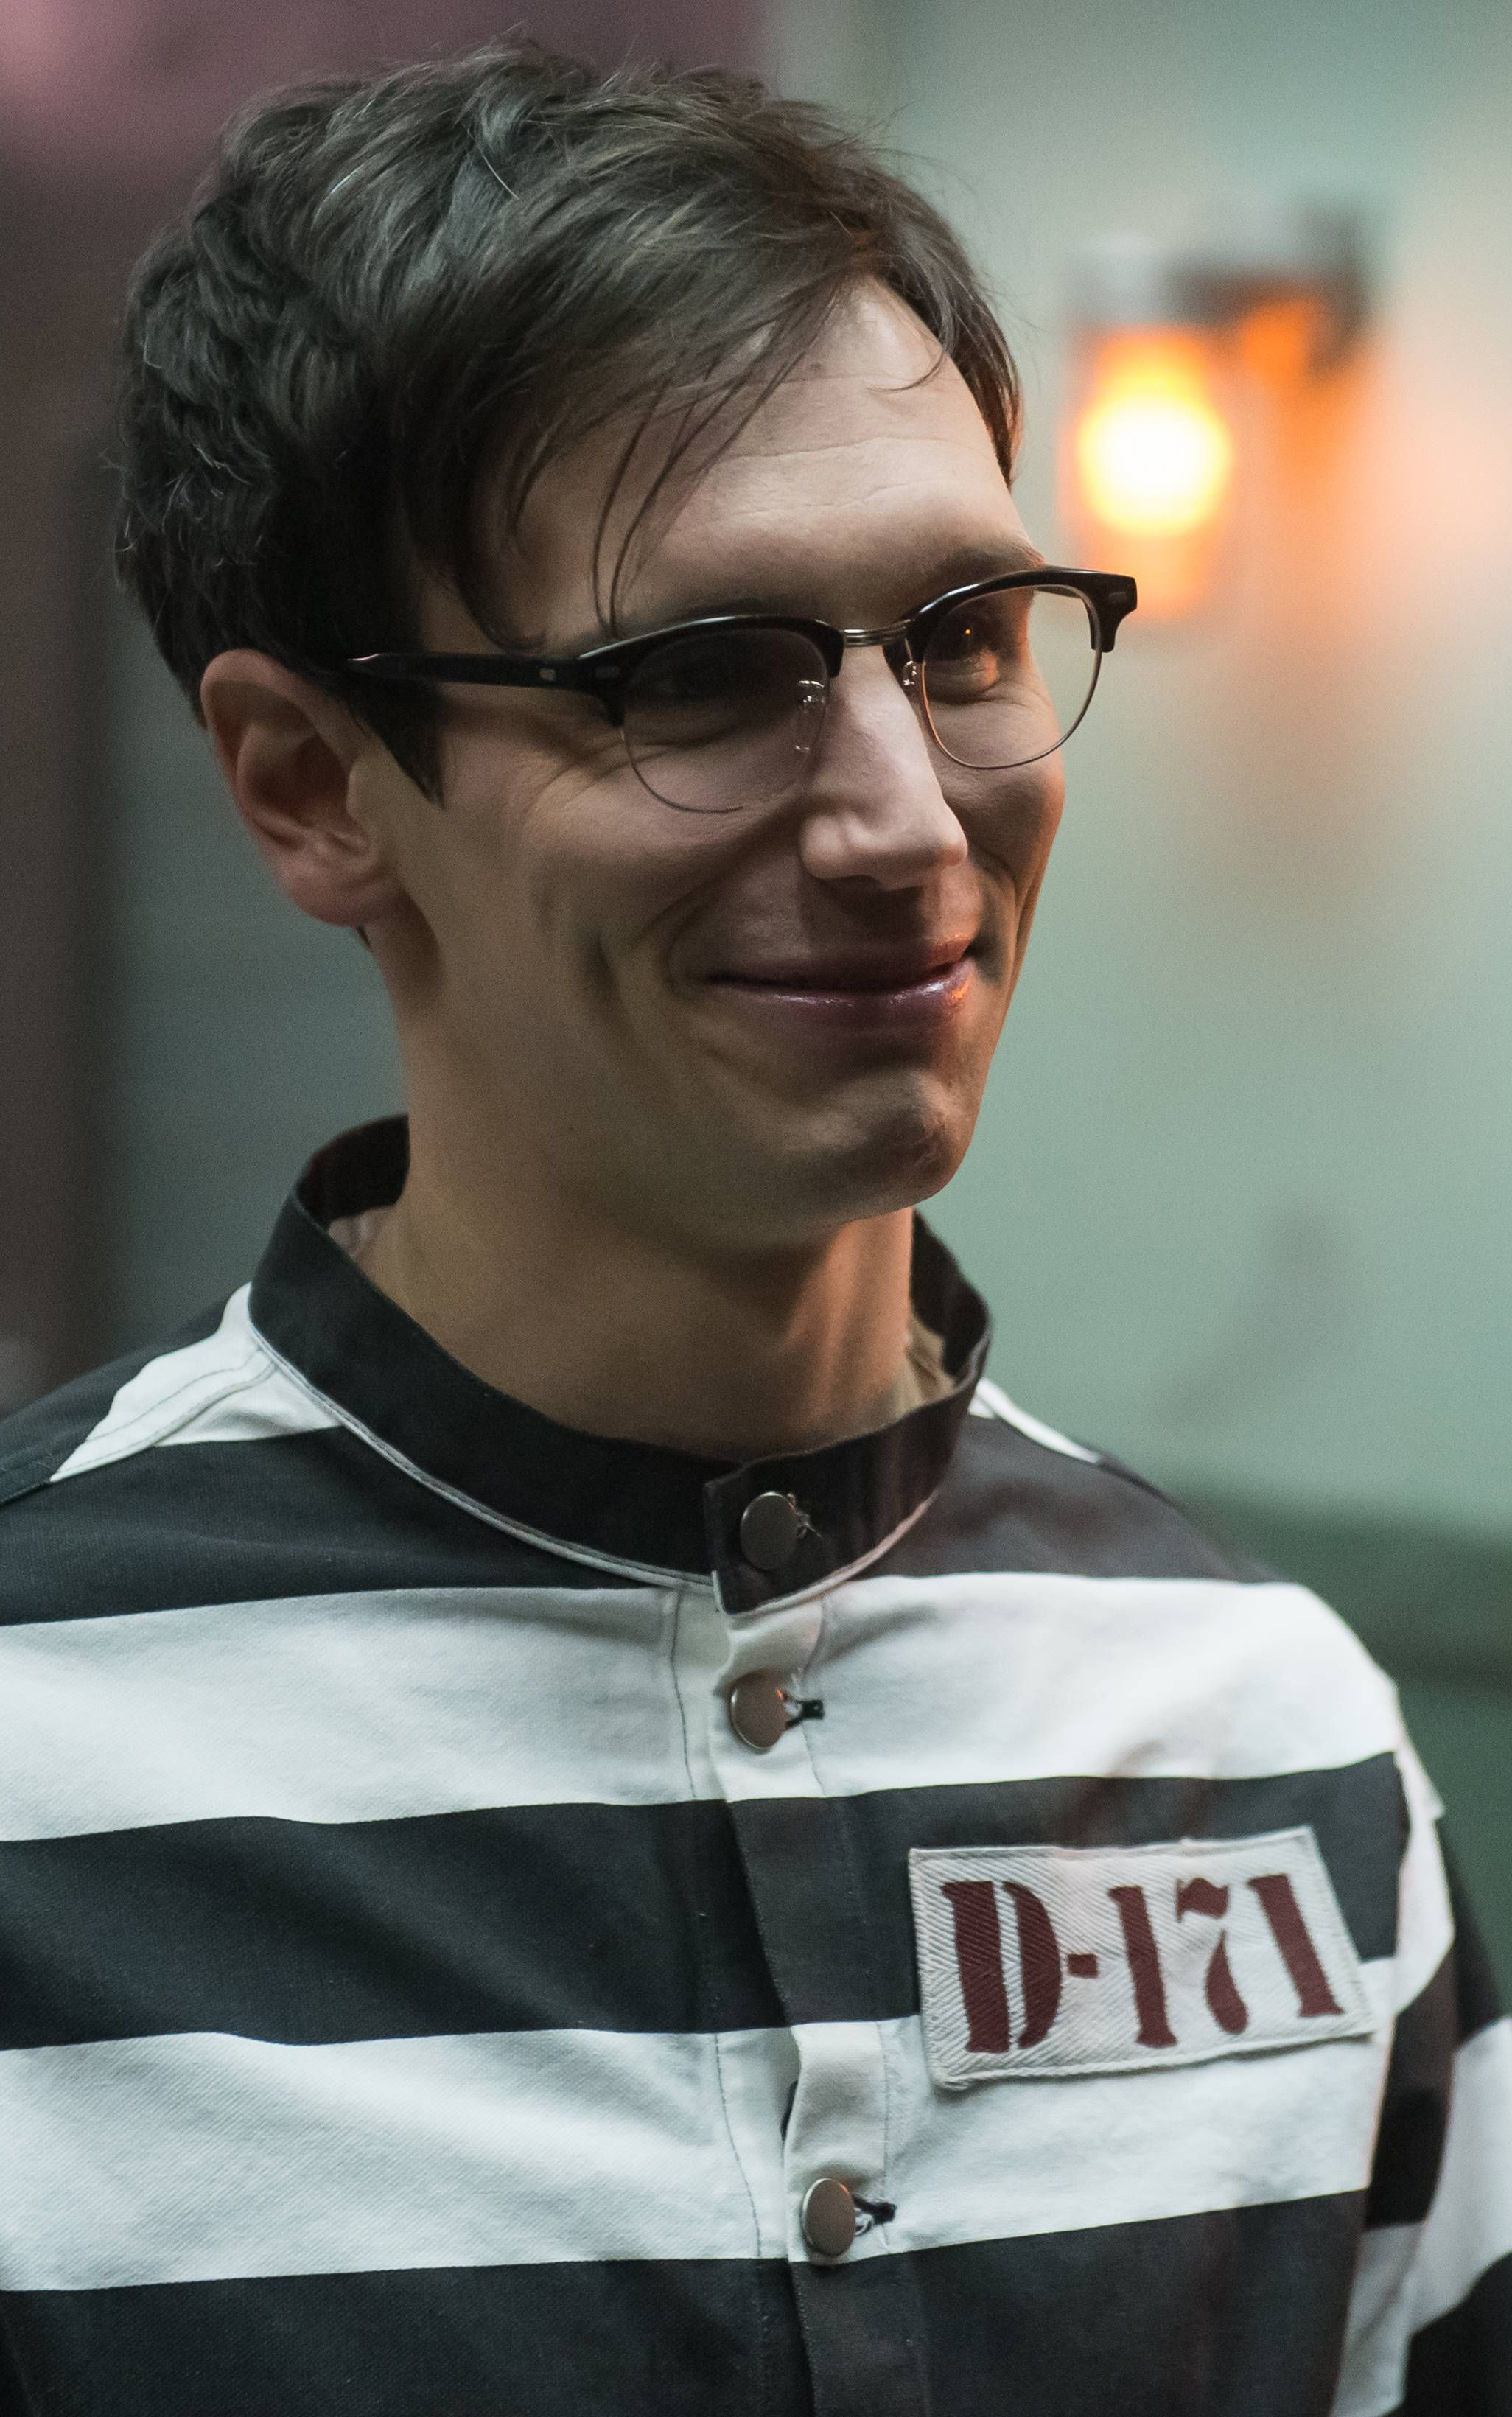 Gotham 2x20 - Edward Nygma (Cory Michael Smith) I just love him so much he's so adorable <3